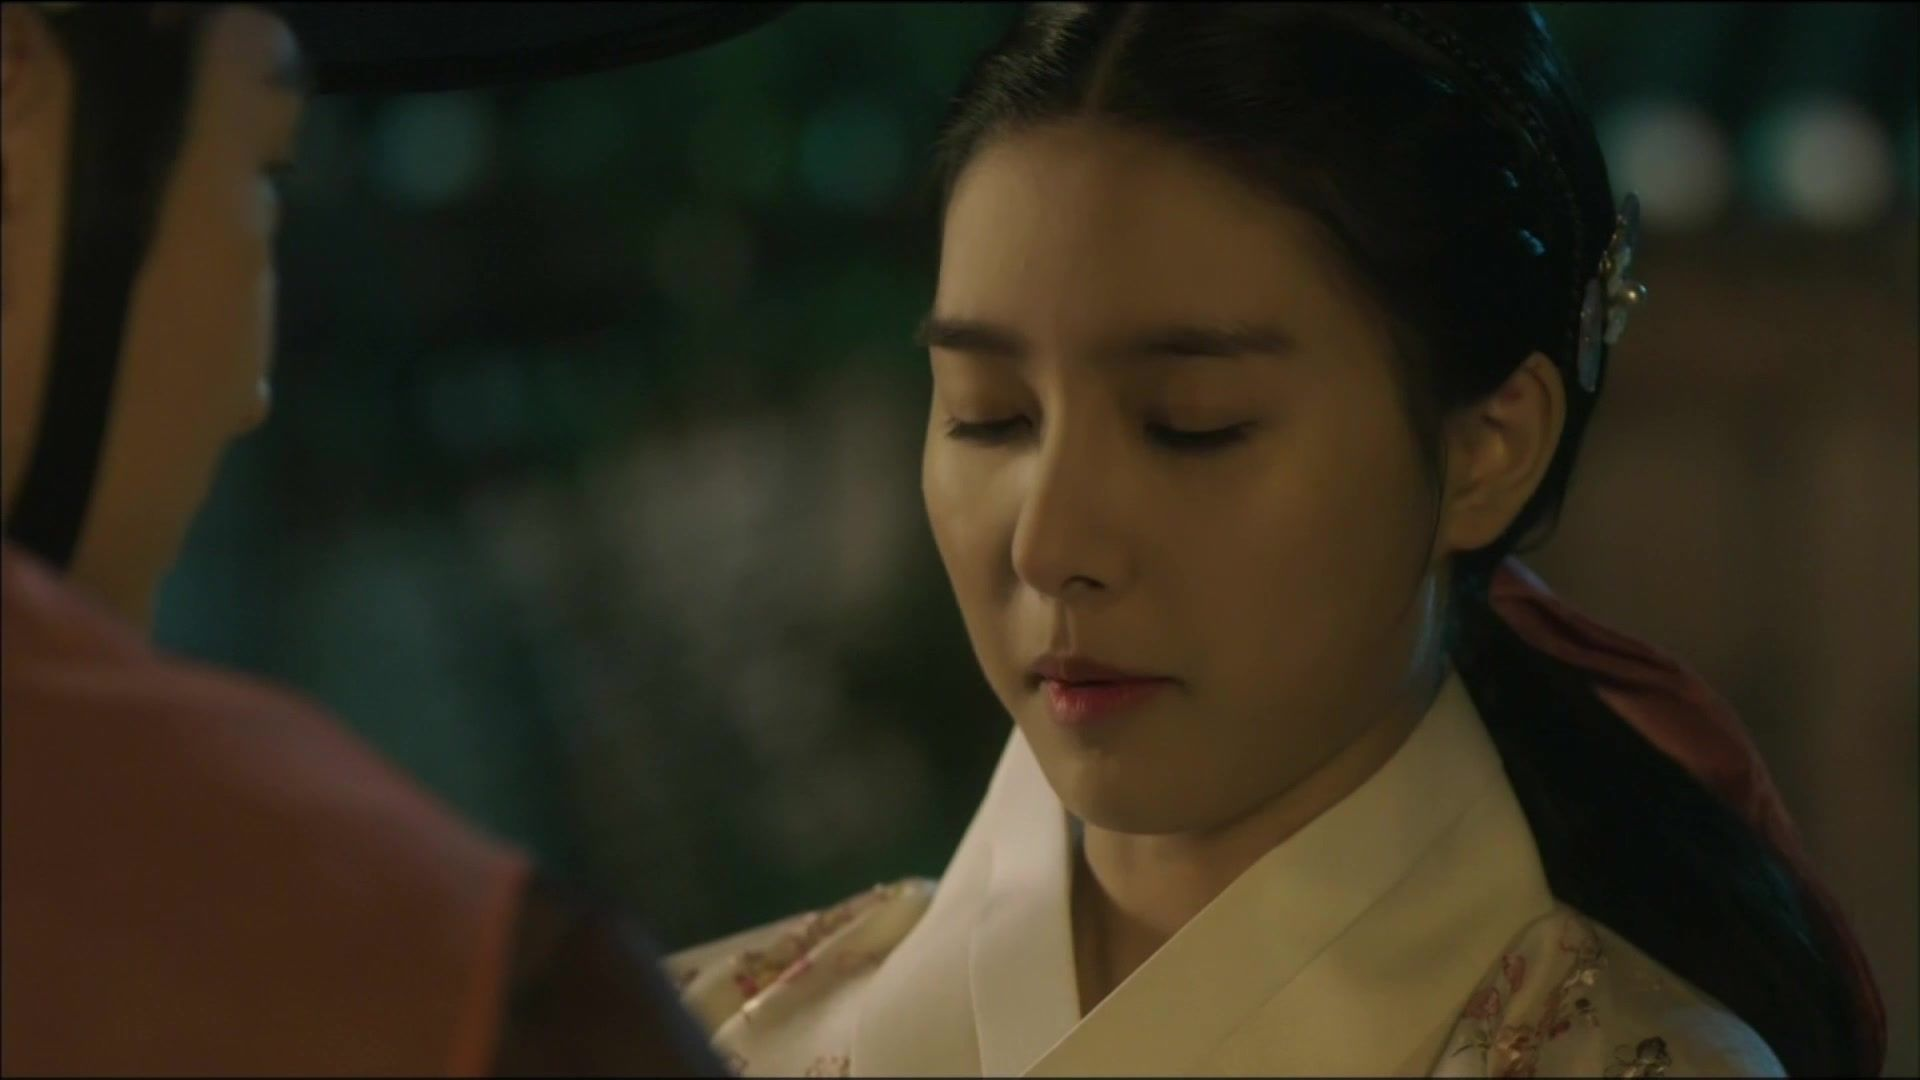 Late Night Date Between Joon Gi and So Eun: Scholar Who Walks the Night